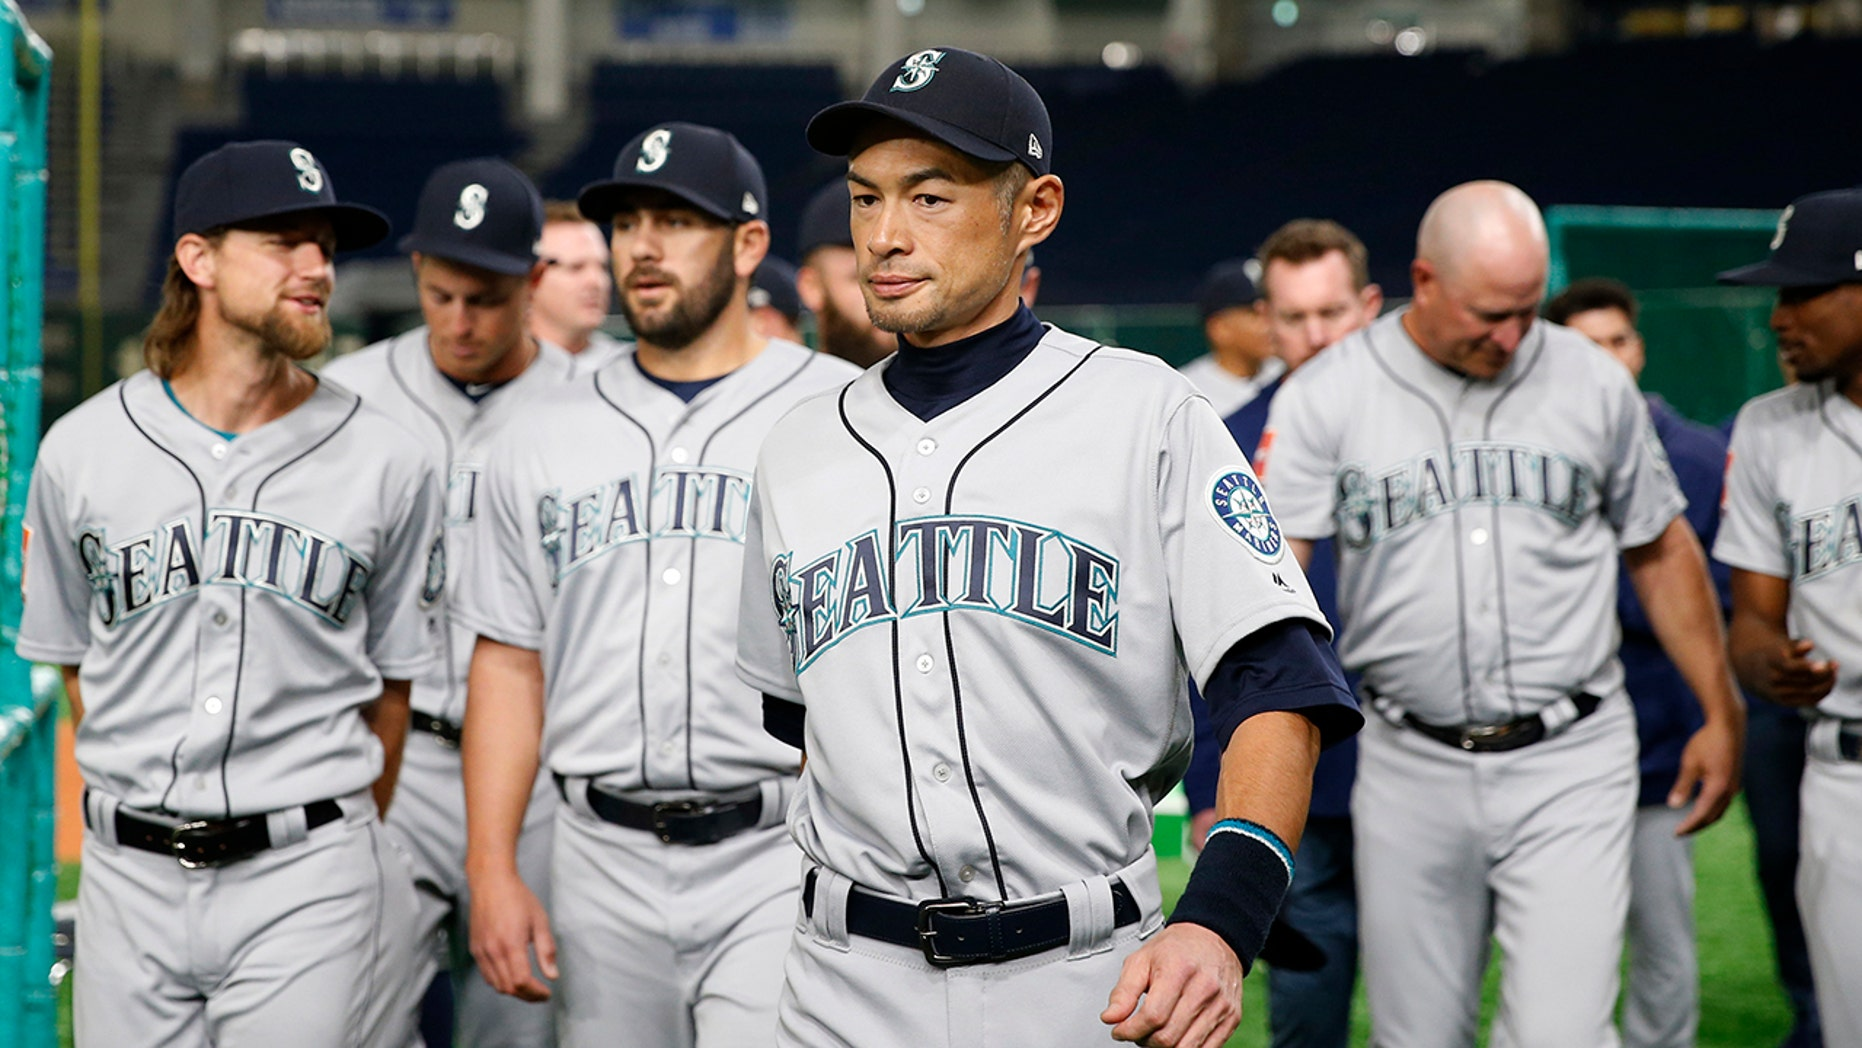 Seattle Mariners right fielder Ichiro Suzuki leaves after his team's organisation print before to Game 1 of a Major League opening array ball diversion opposite a Oakland Athletics during Tokyo Dome in Tokyo, Wednesday, Mar 20, 2019.